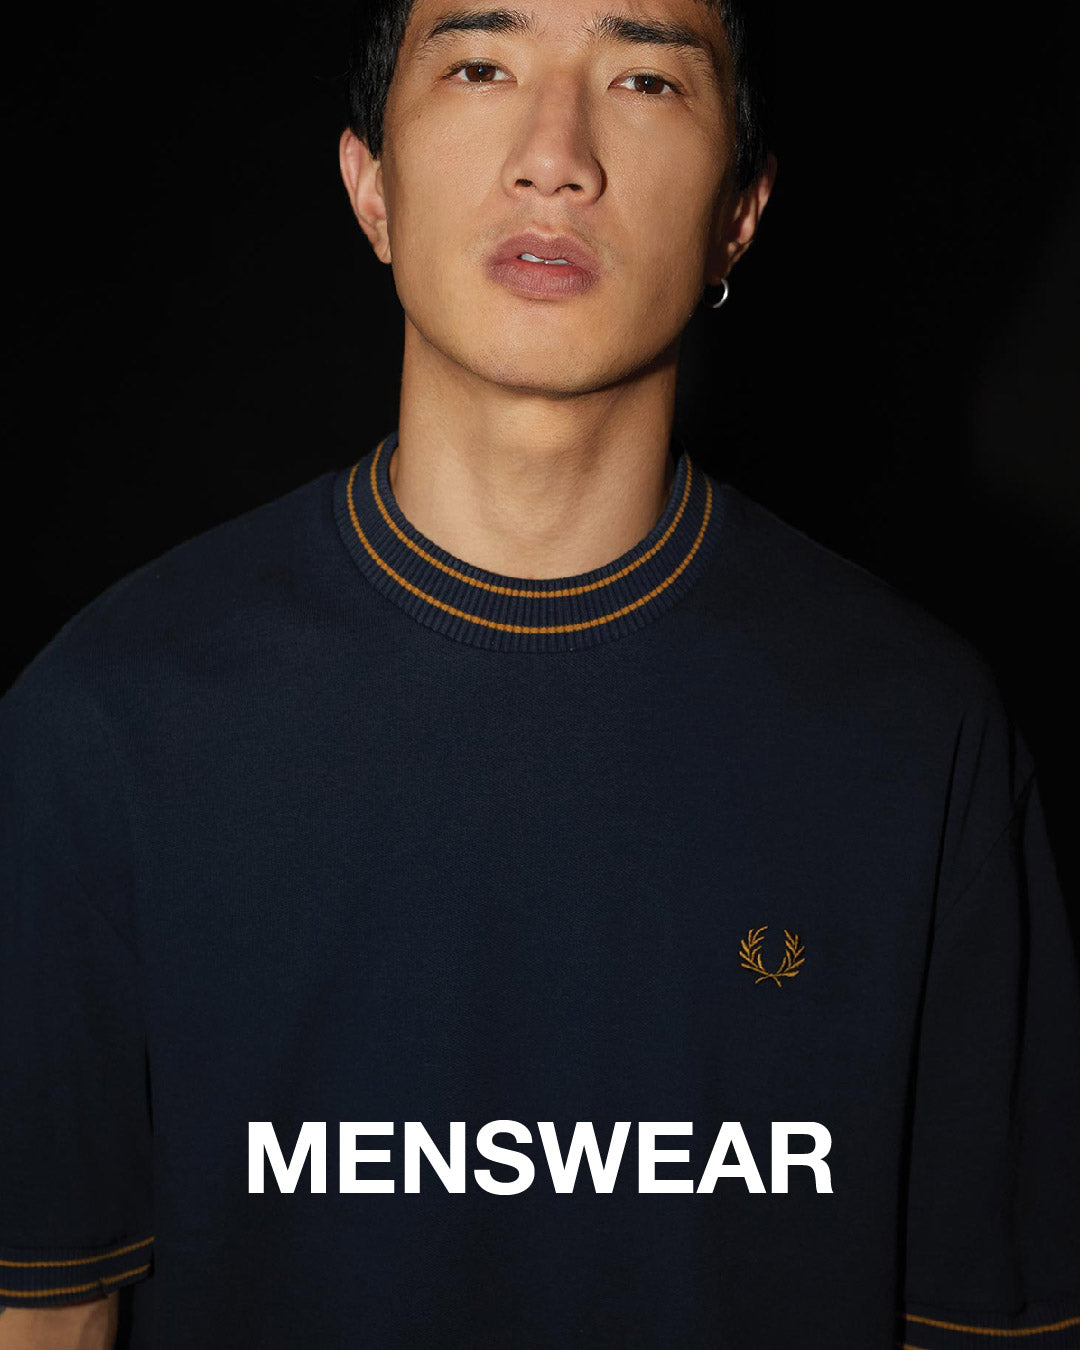 https://www.707.co.id/collections/menswear